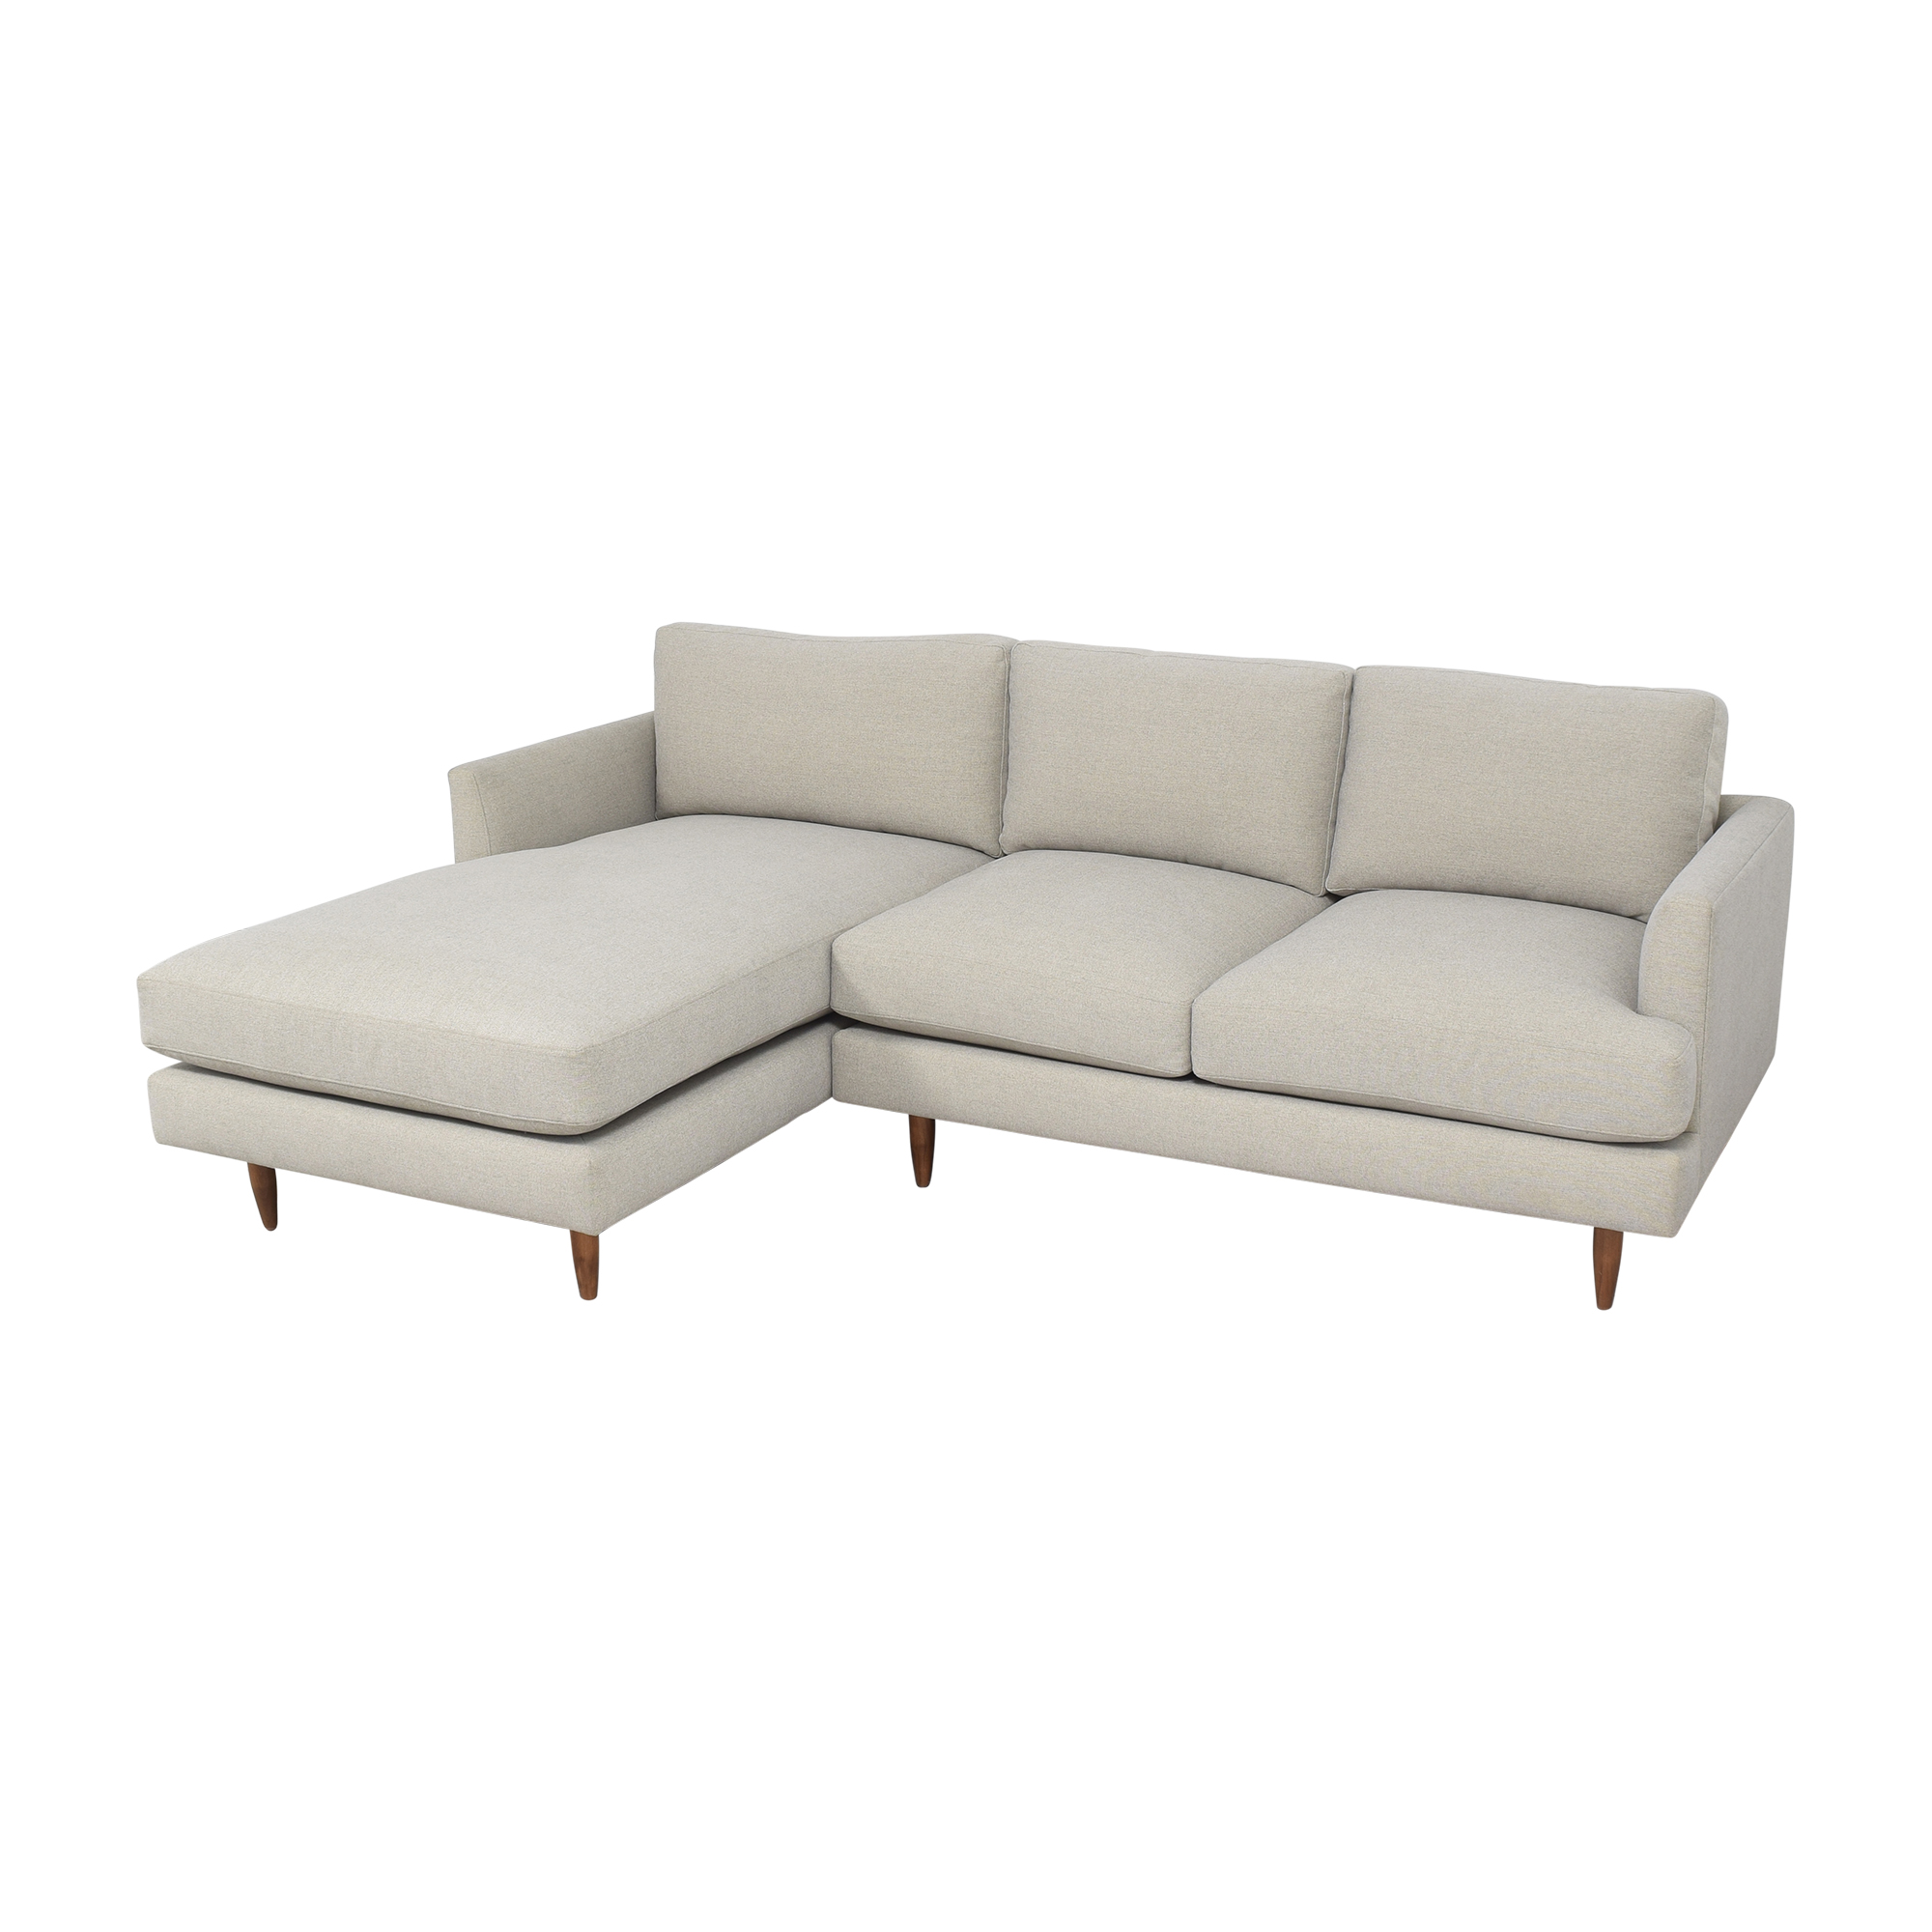 BenchMade Modern Crowd Pleaser Sofa With Chaise / Sectionals